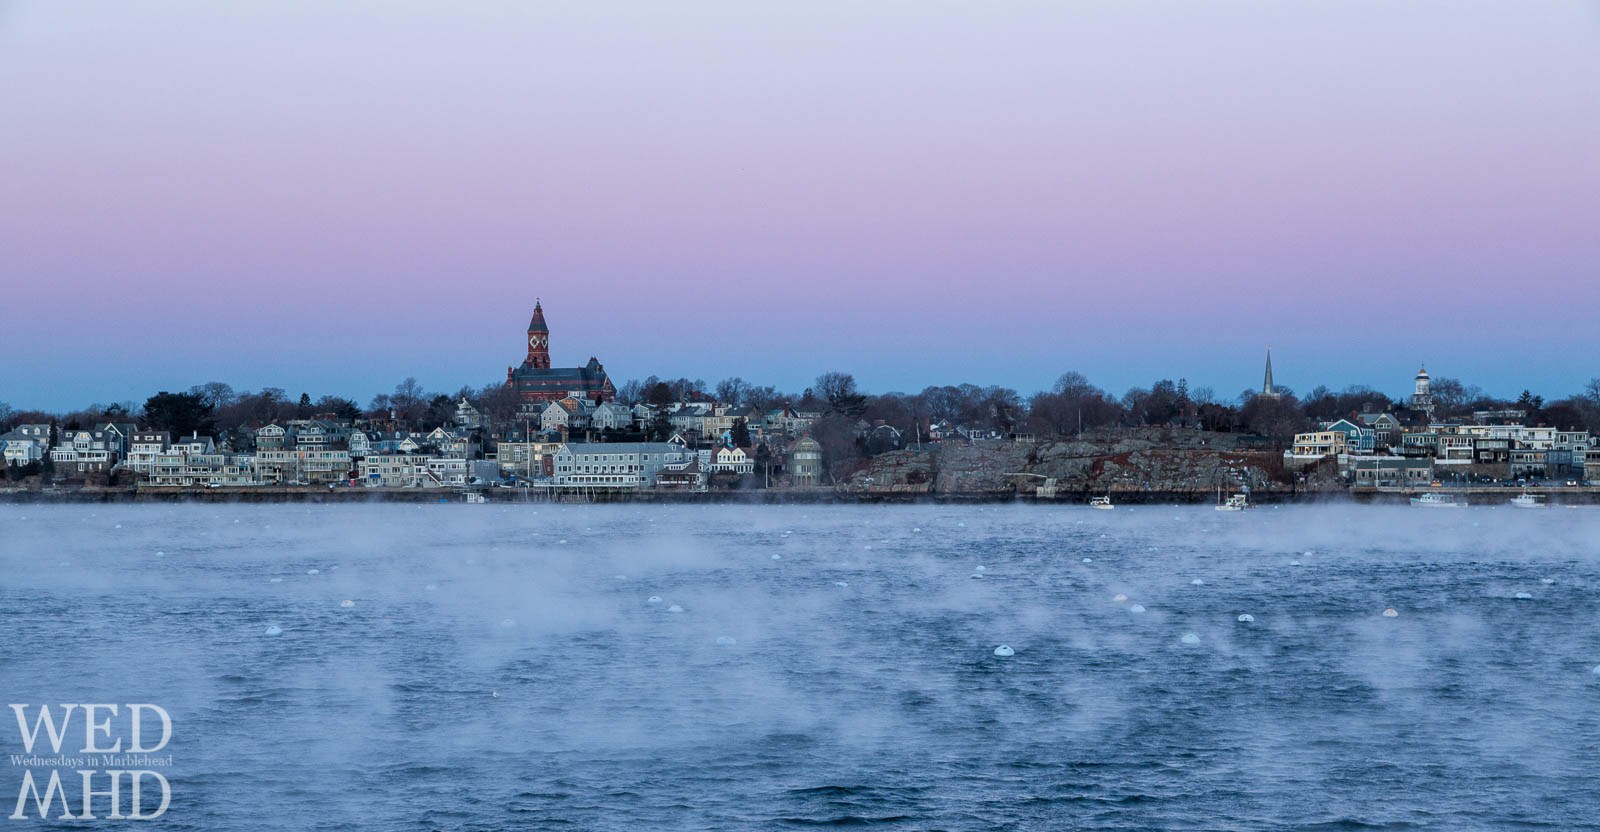 seas smoke fills Marblehead Harbor with Abbot Hall in the distance